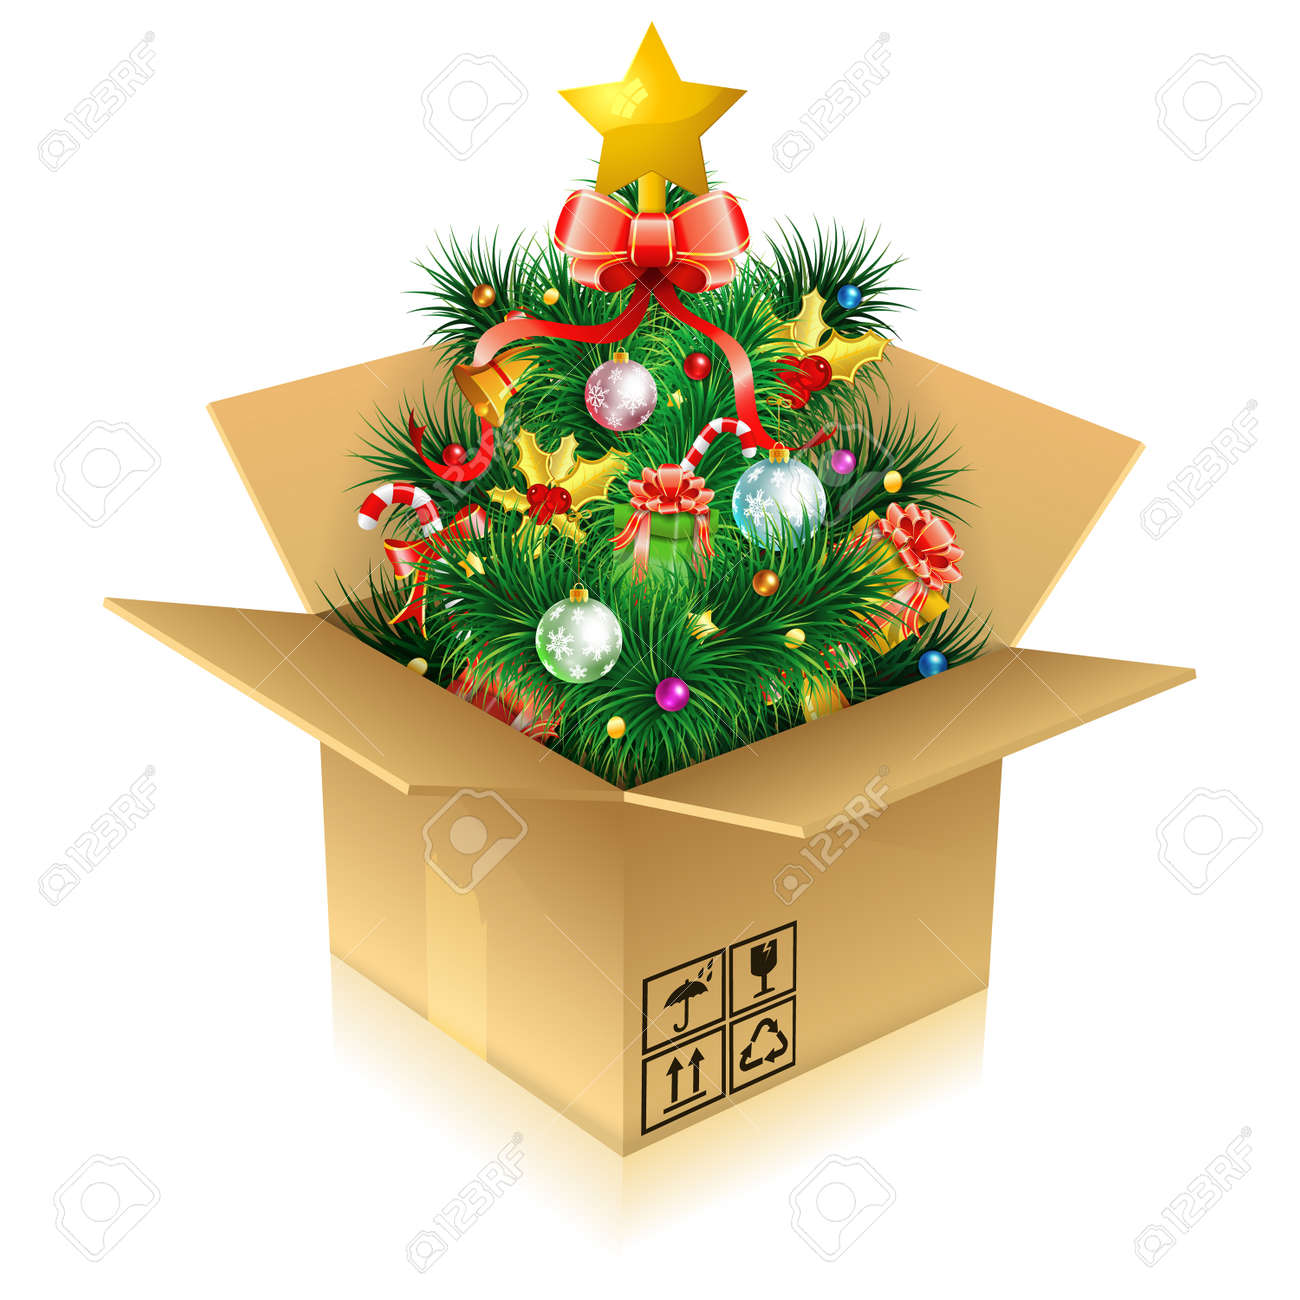 Christmas Tree With Candy Fir Branches Mistletoe Gift In